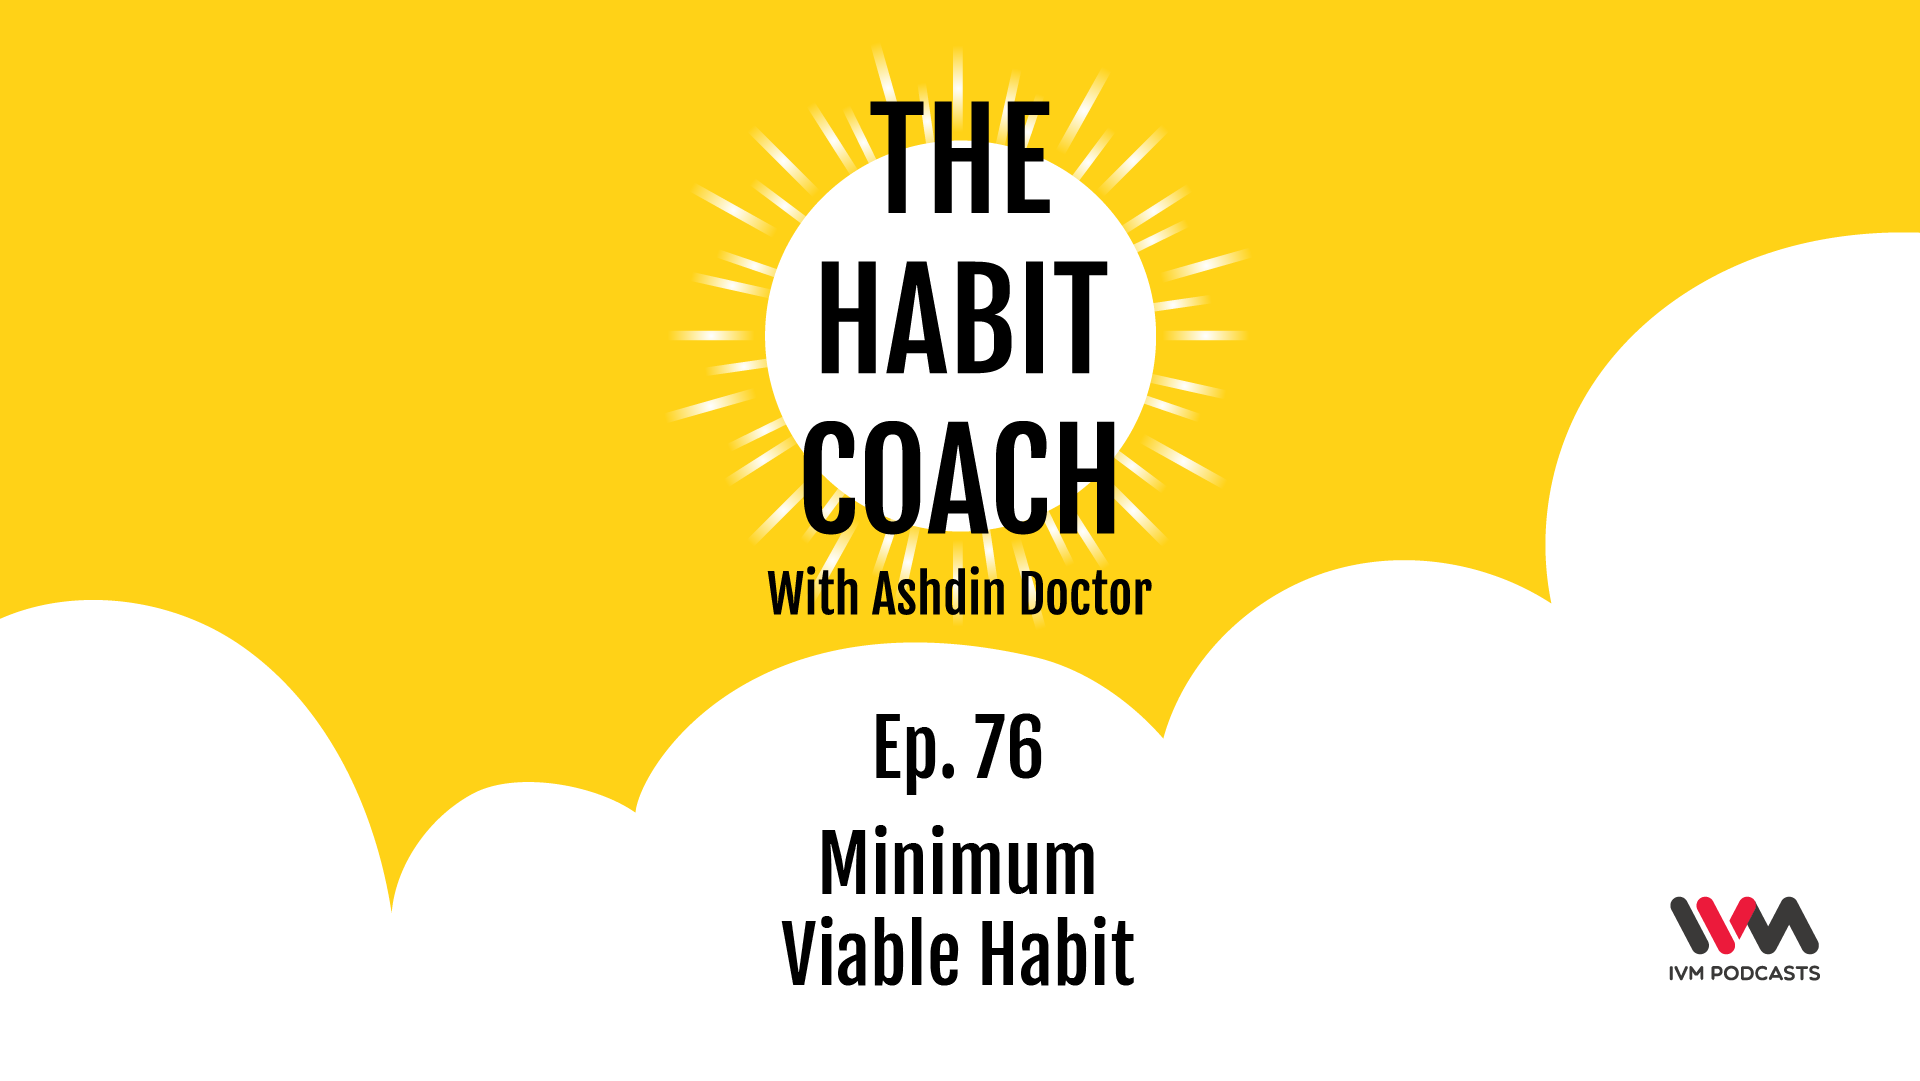 TheHabitCoachEpisode76.png